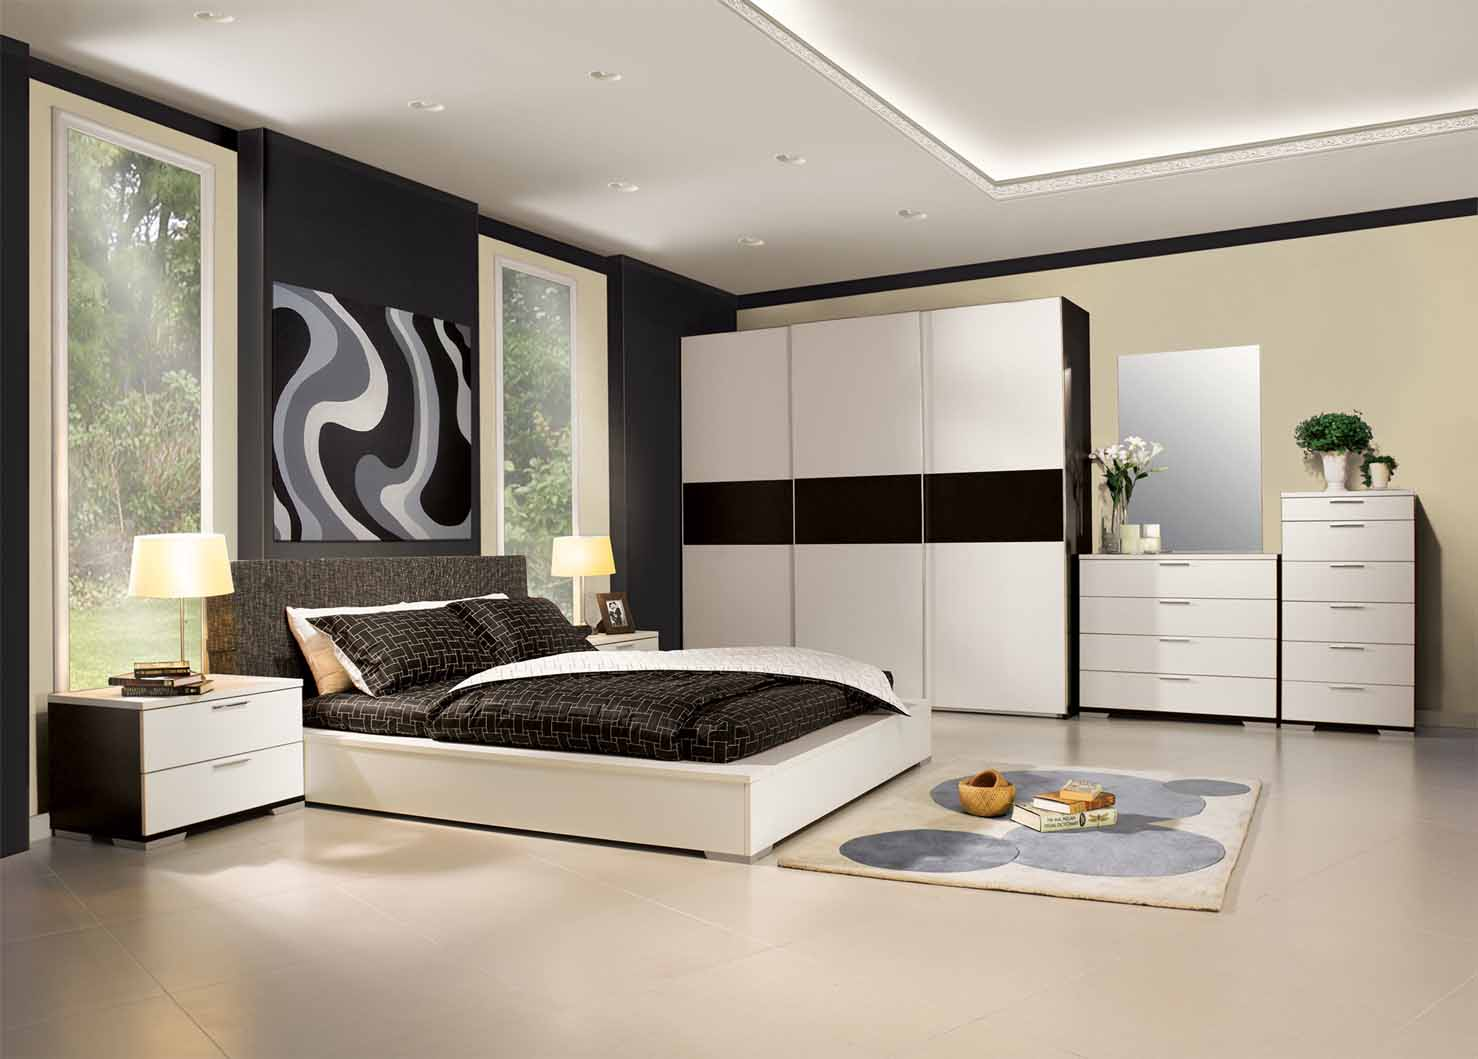 Home interior designs modern bedroom ideas for Modern bedroom interior